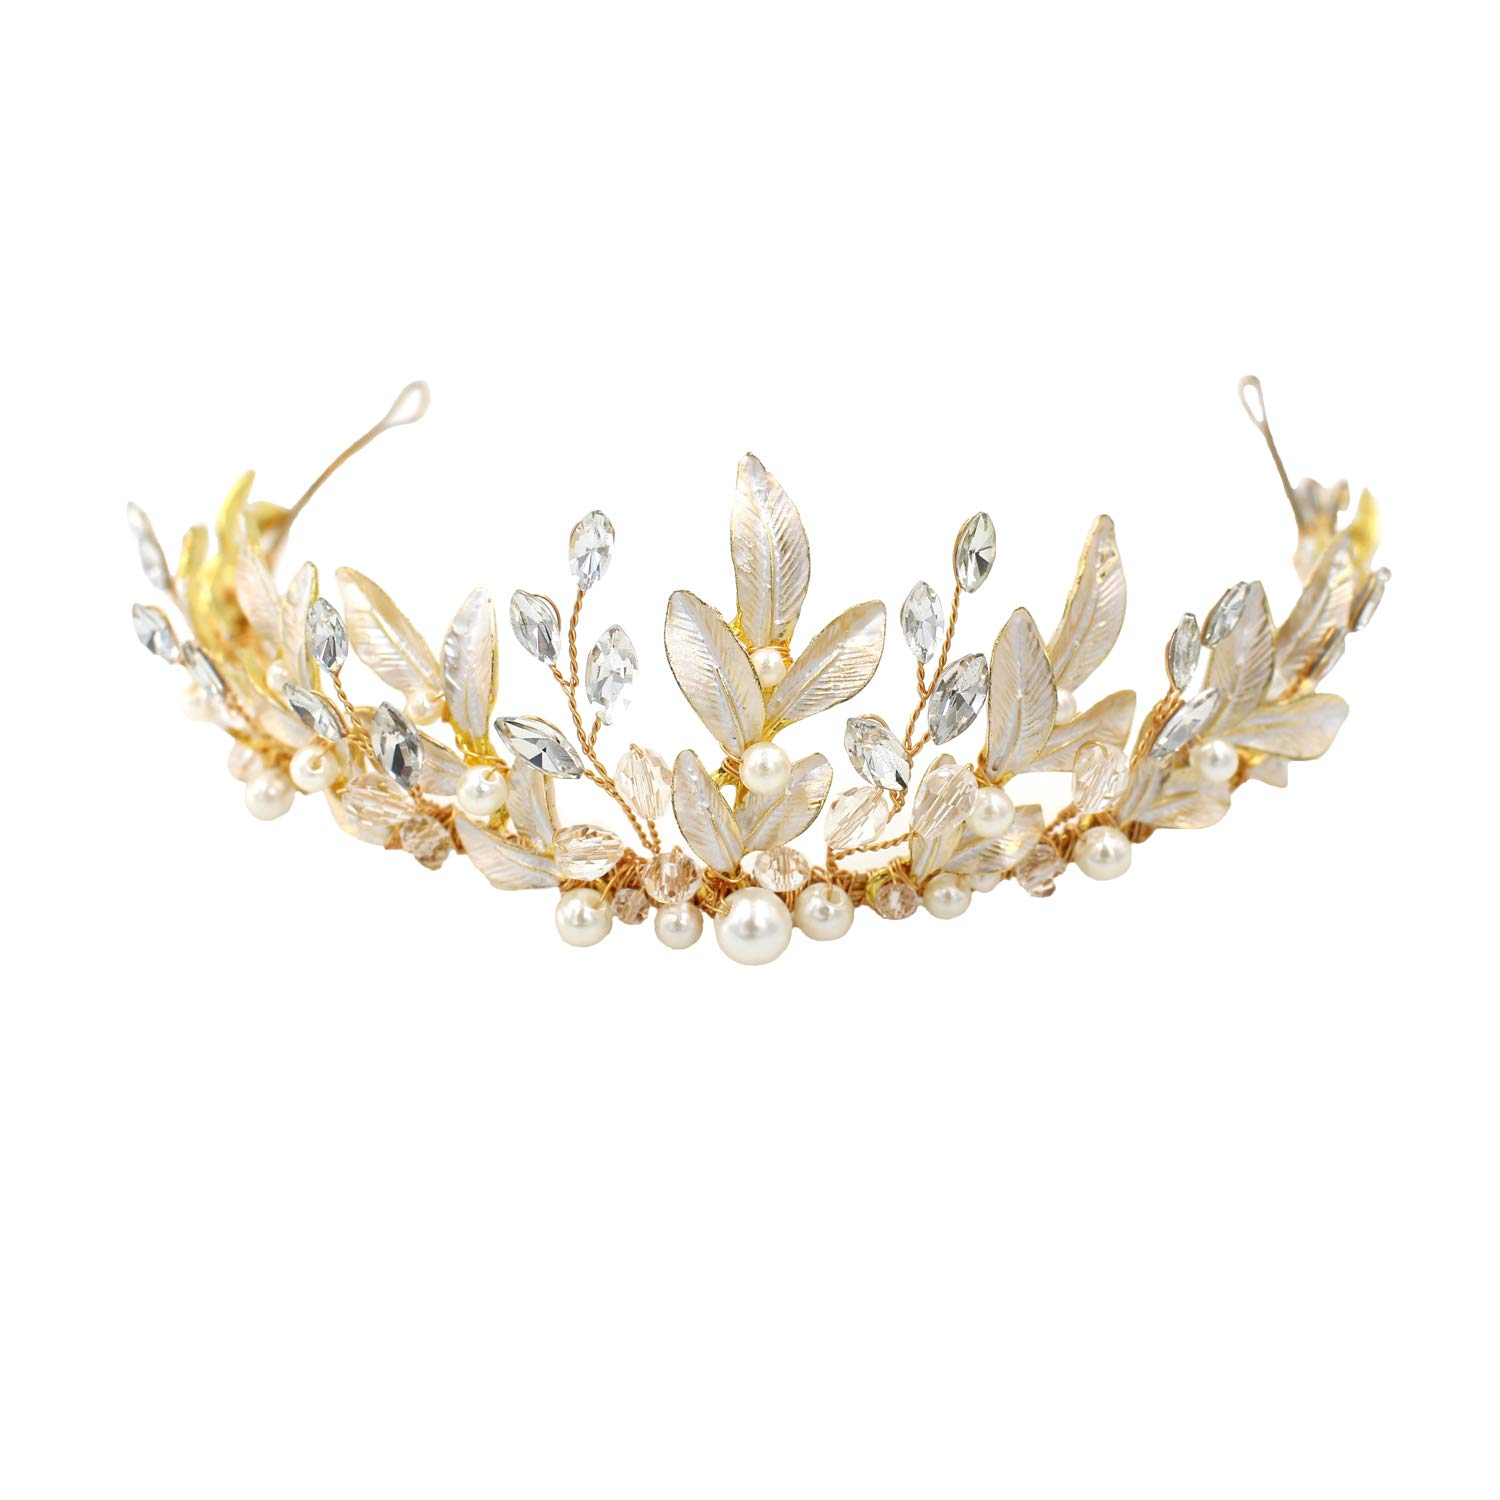 Bridal Tiara Headpiece Hair Vine Jewelry Crystals Pearl Headband Wedding Party Evening Hair Accessories by OUMOU